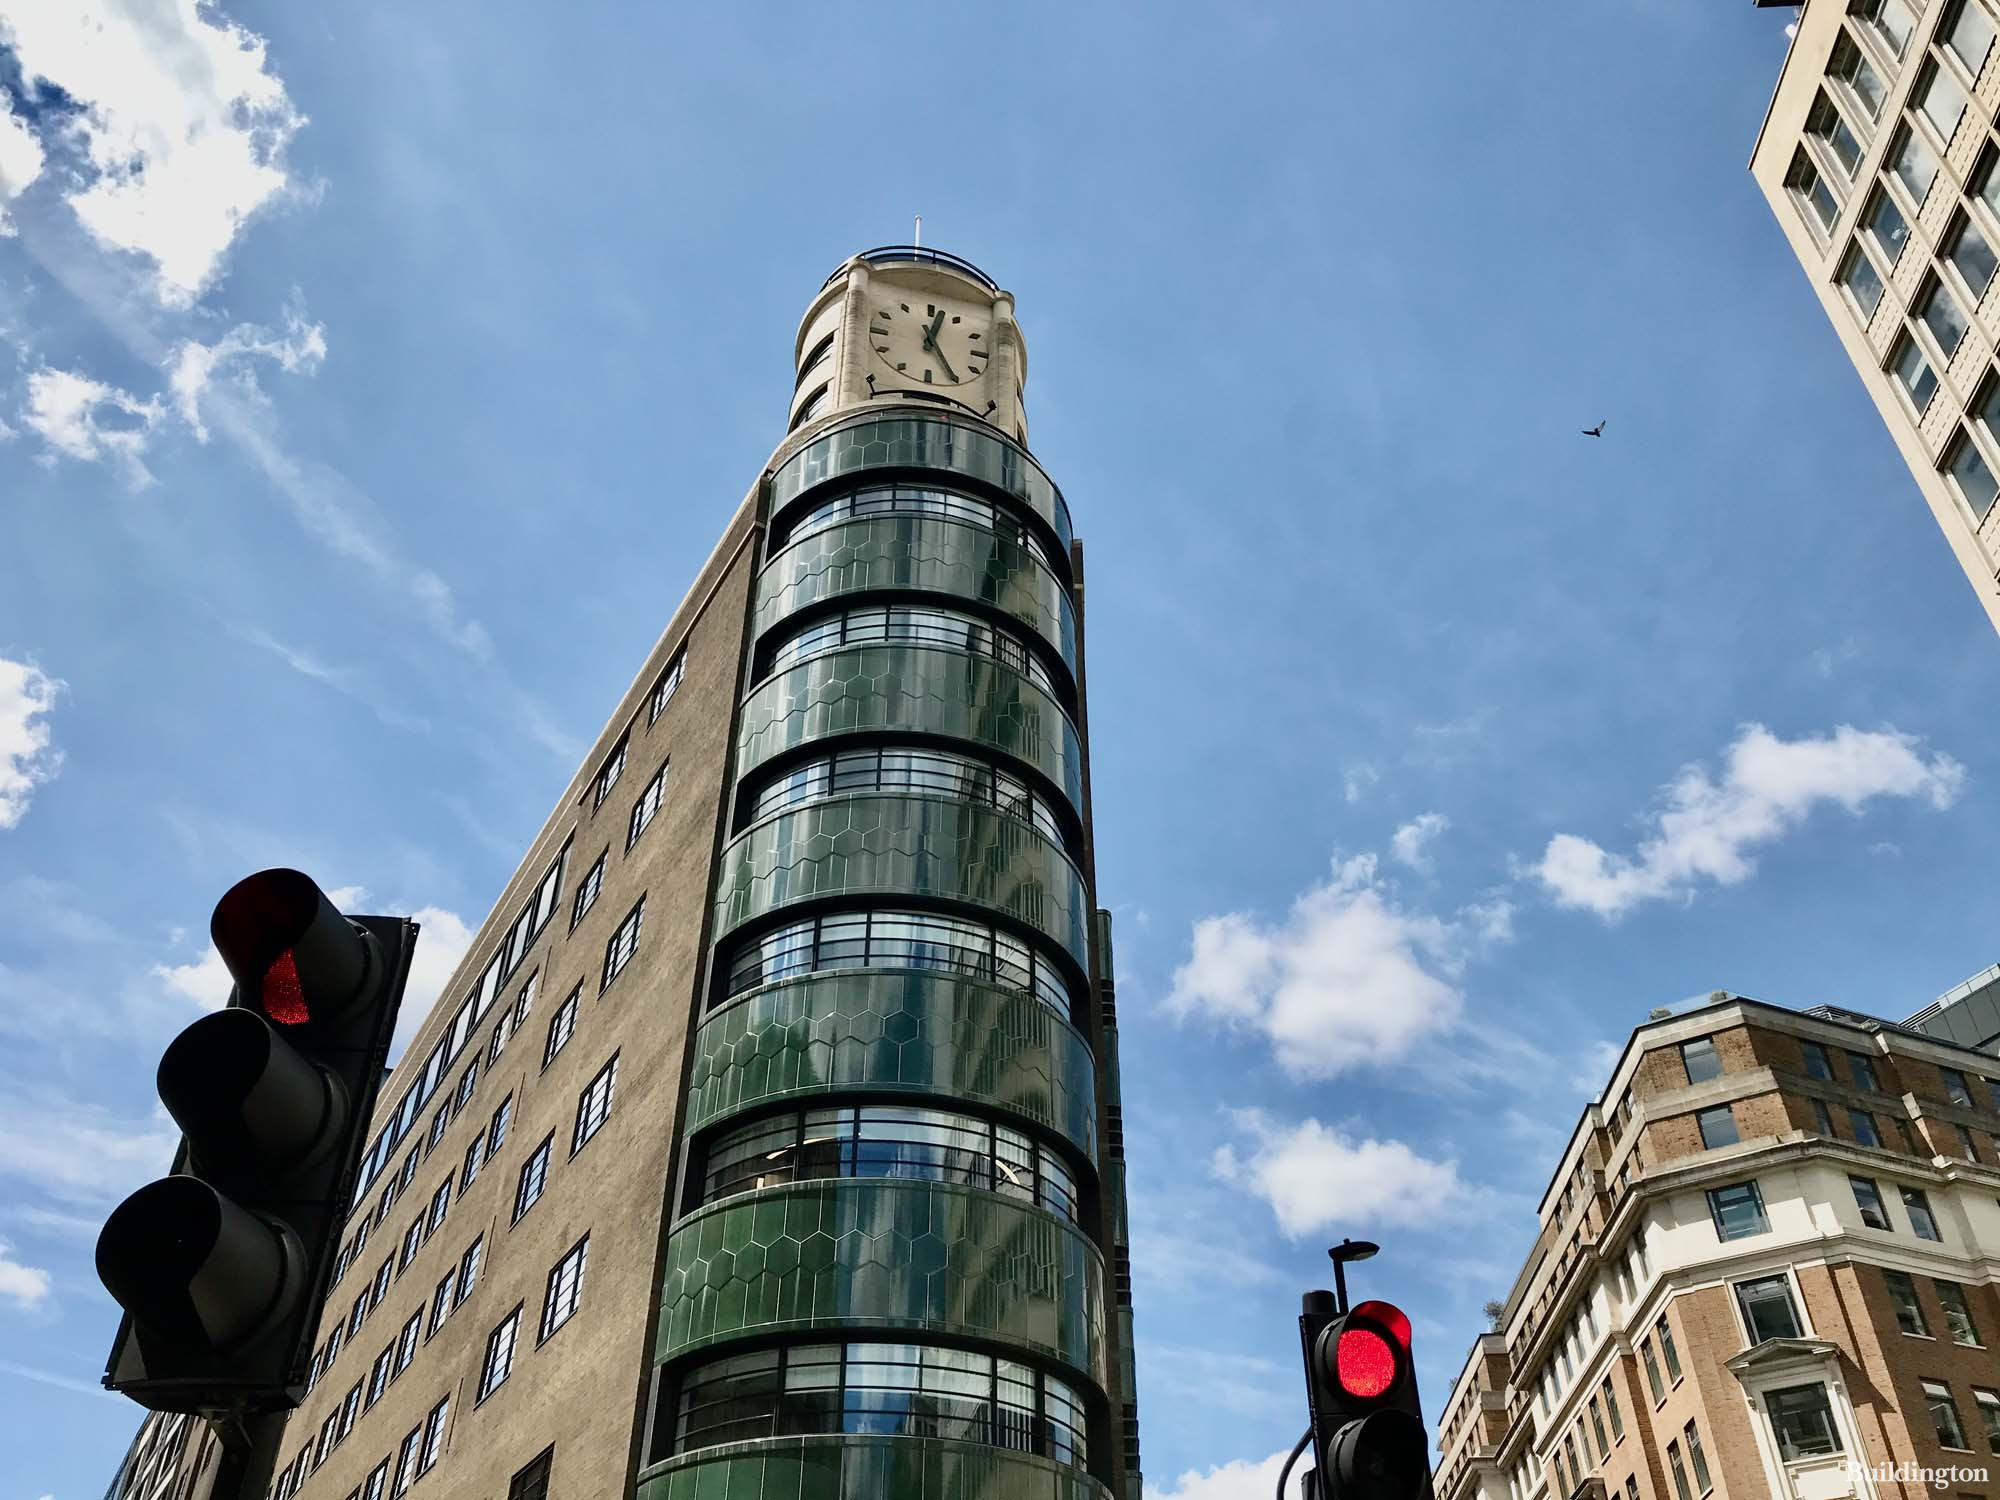 1 New Oxford Street clock tower designed by ORMS.